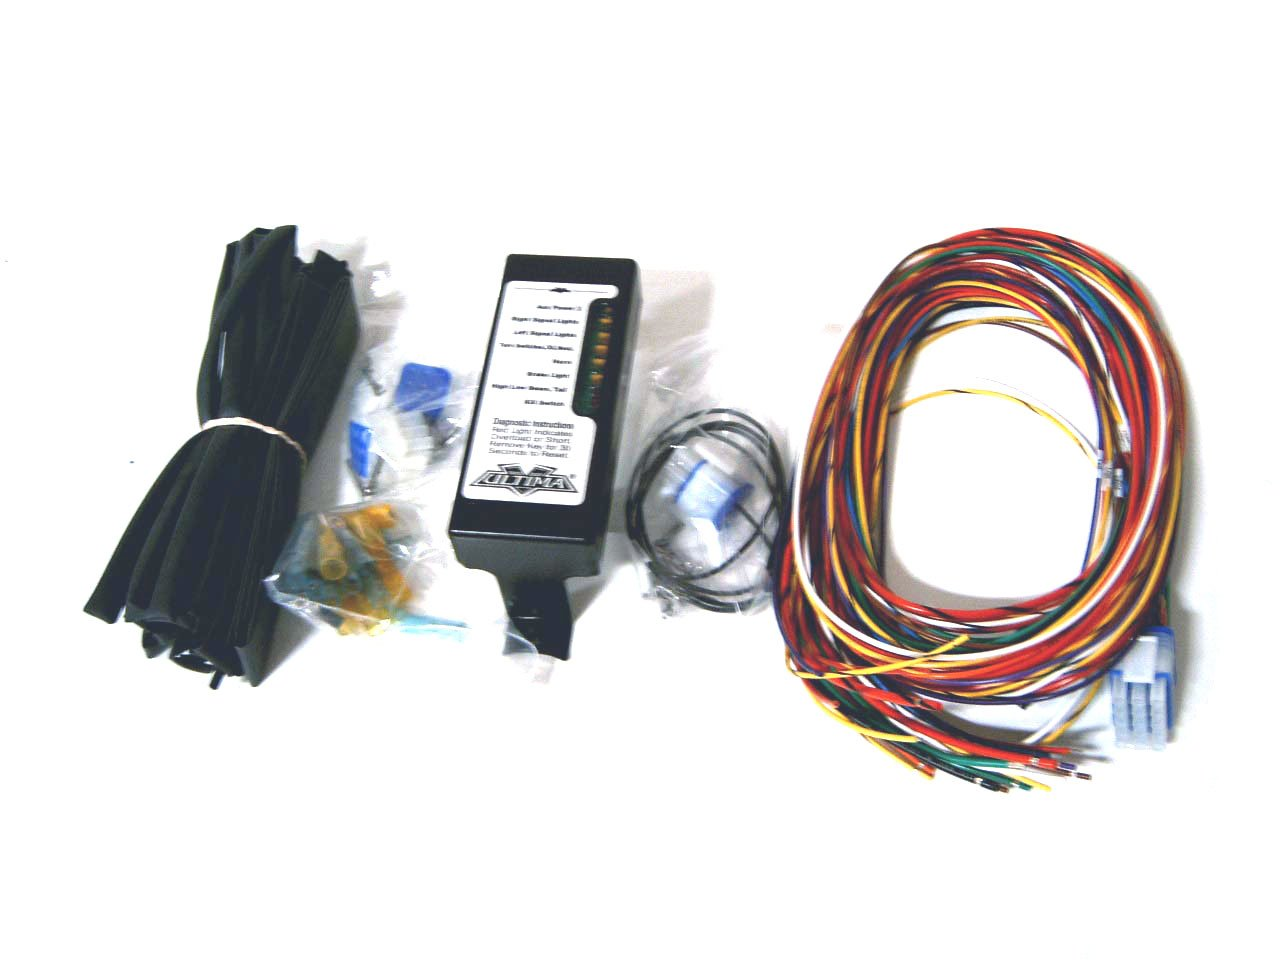 61DV2Bq5%2BHL._SL1280_ amazon com ultima complete wiring harness kit for harley davidson where to buy a trailer wiring harness at aneh.co